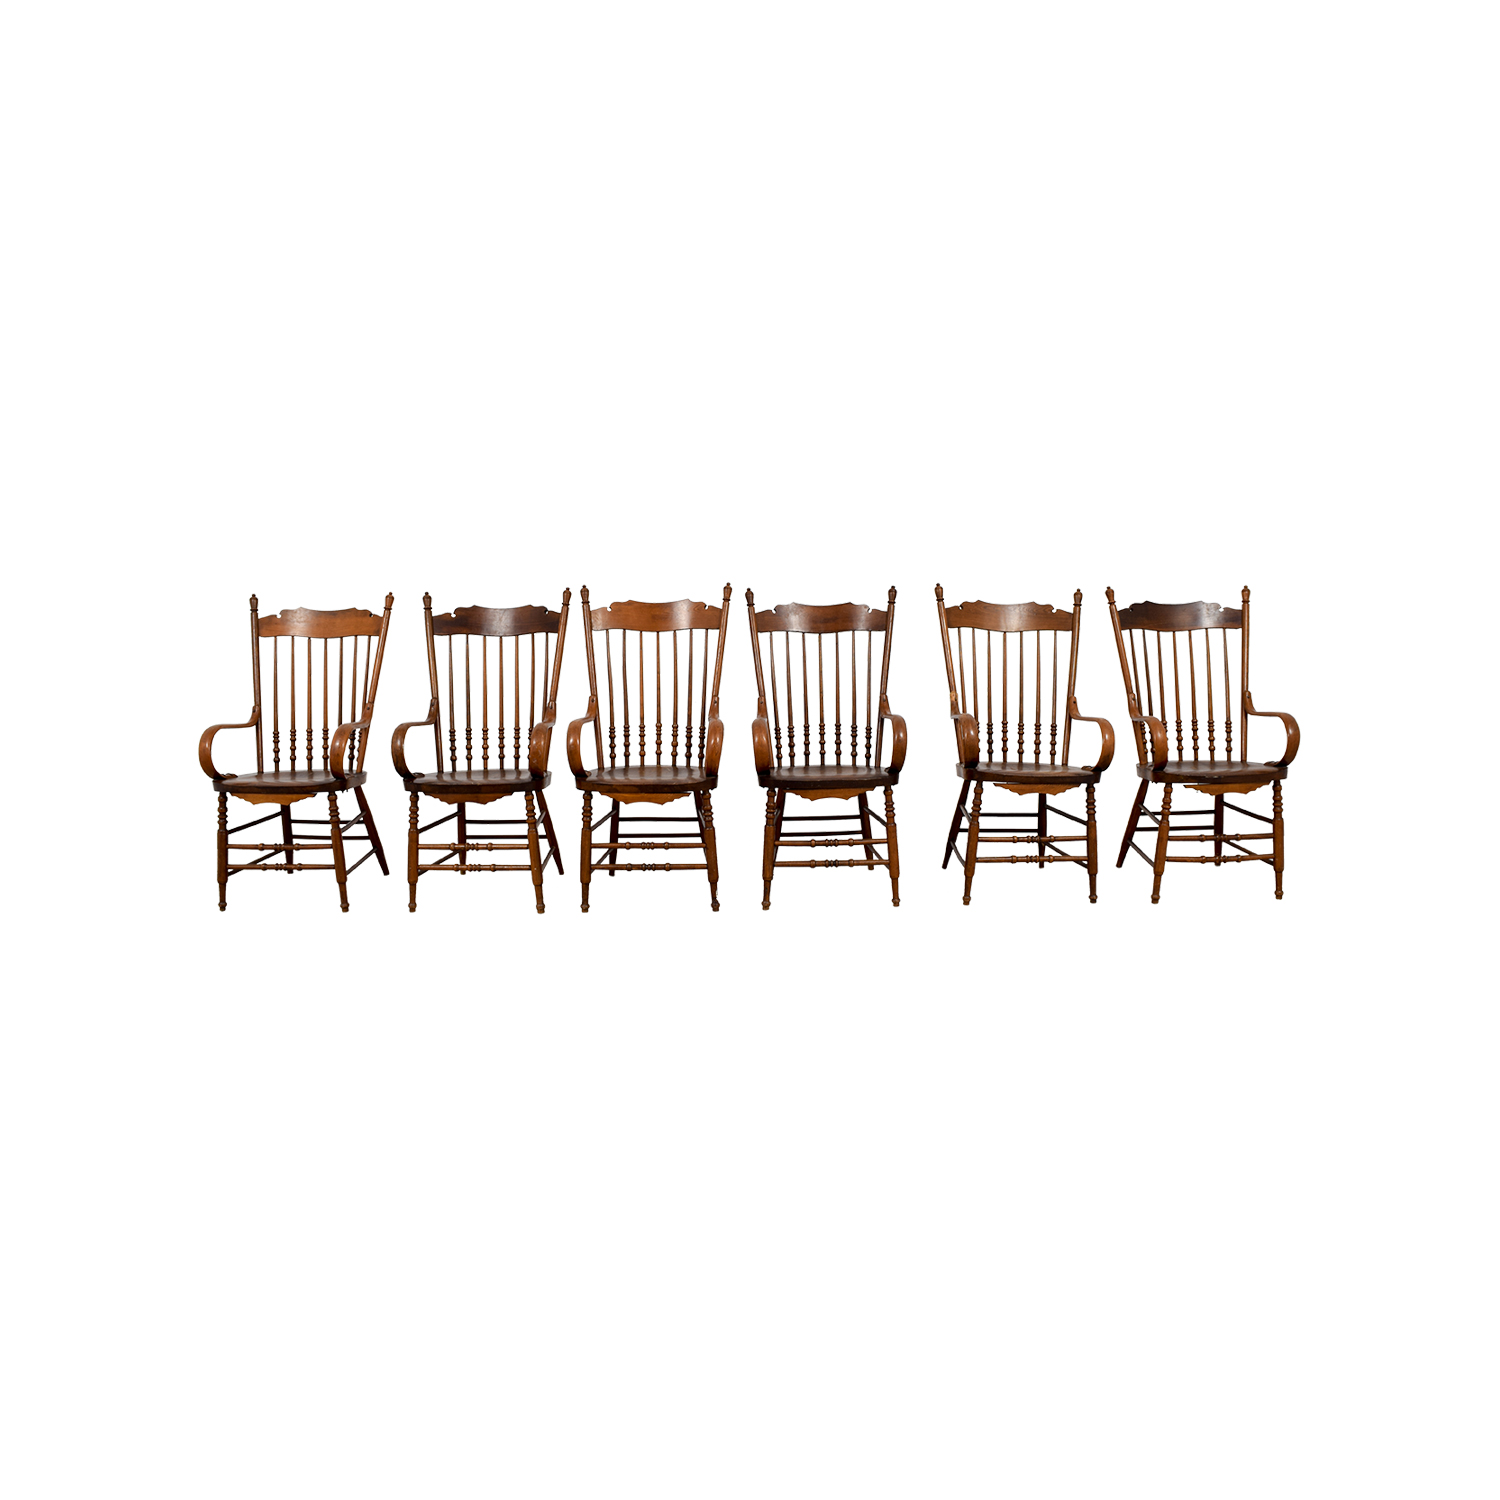 Antique Windsor Chairs with Arms